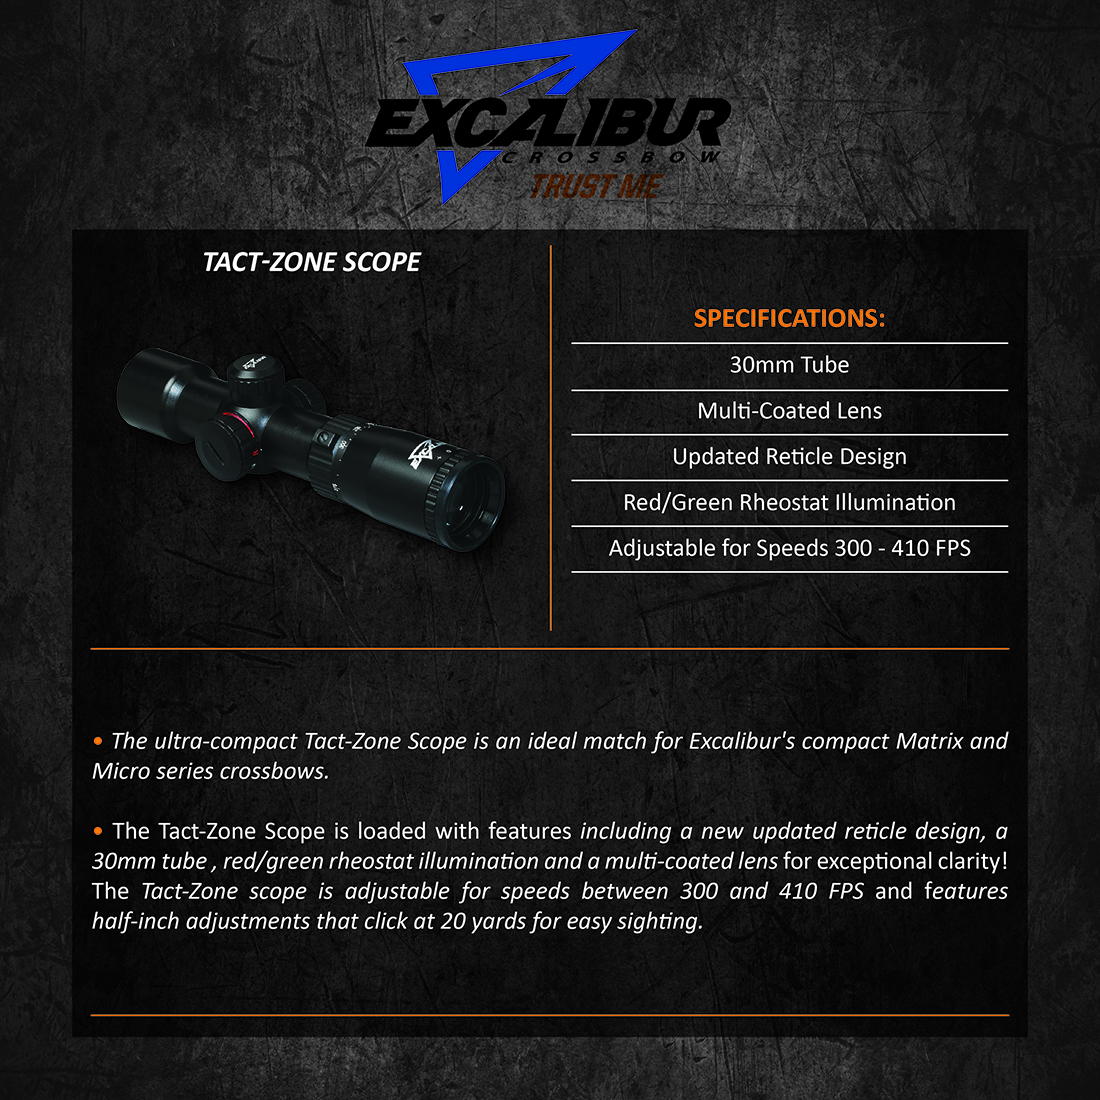 Excalibur_Tact_Zone_Scope_Product_Description